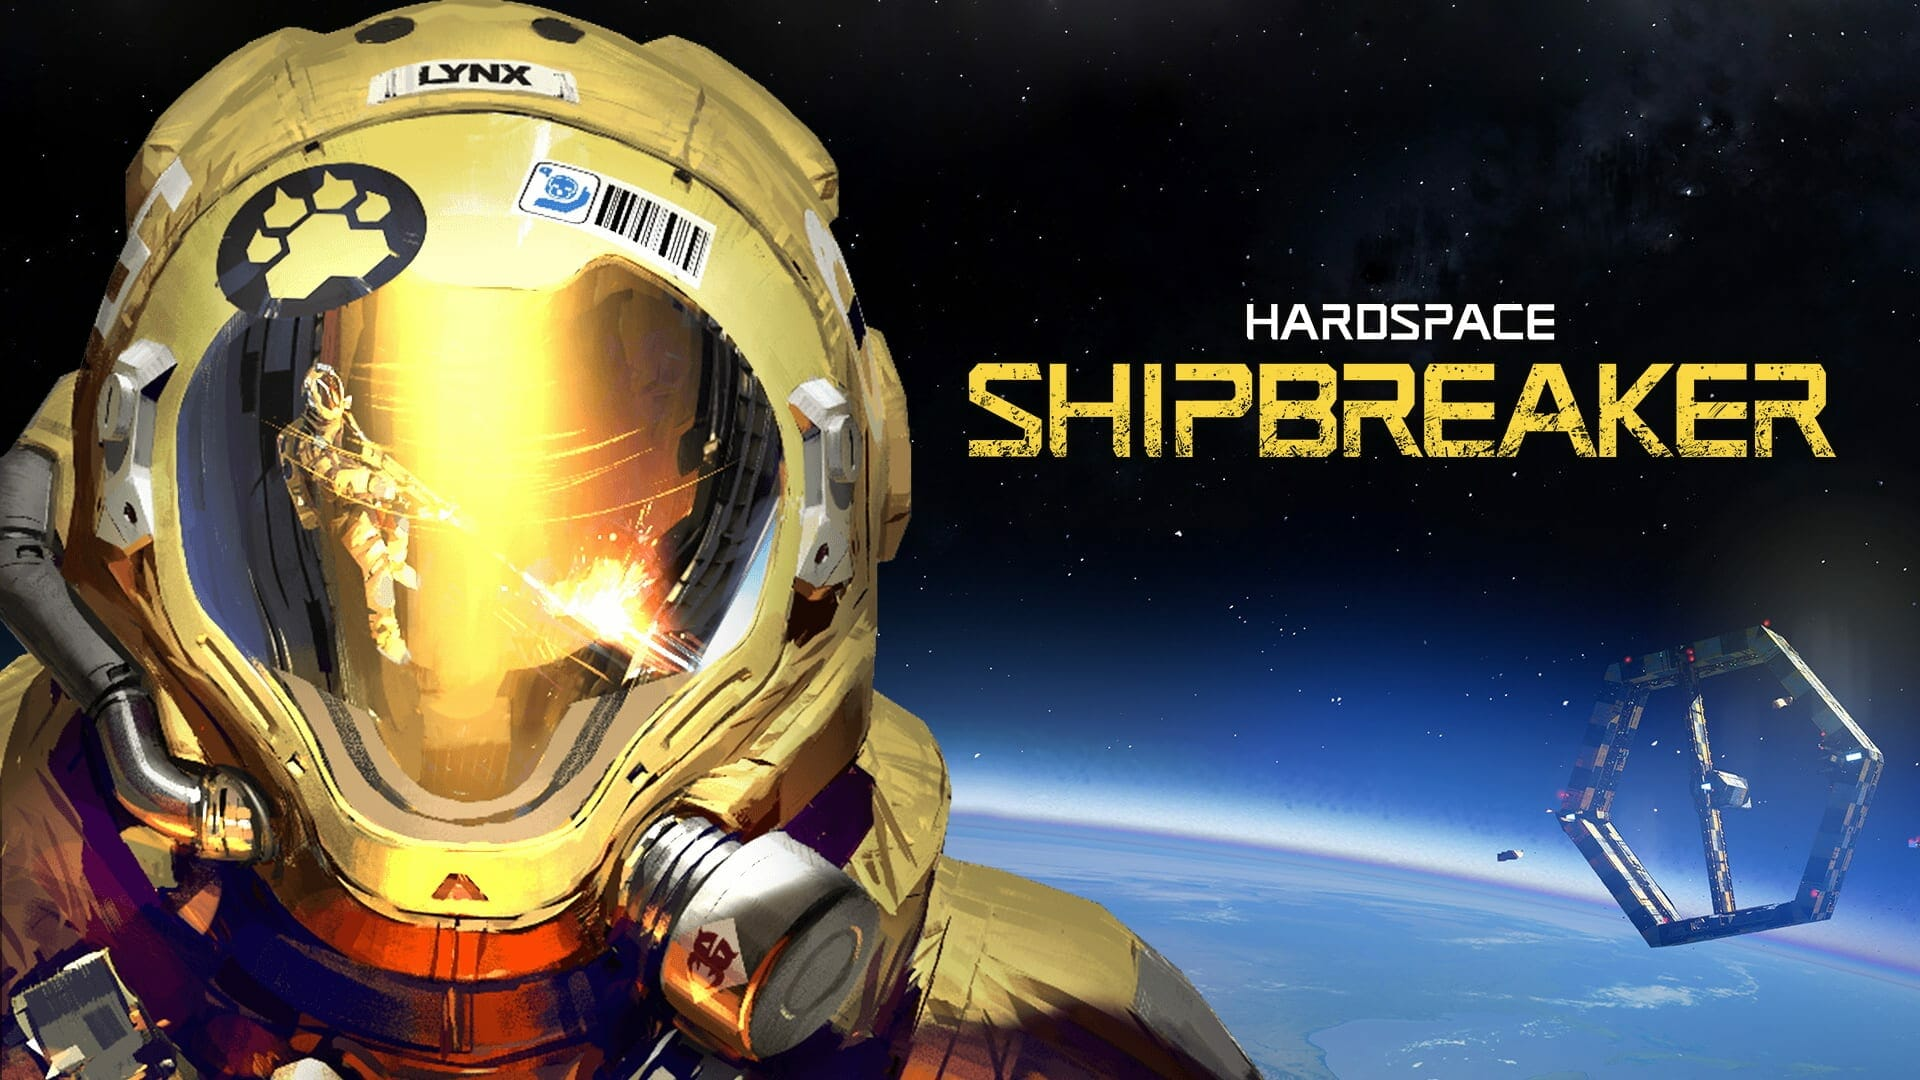 Hardspace: Shipbreaker crash while playing